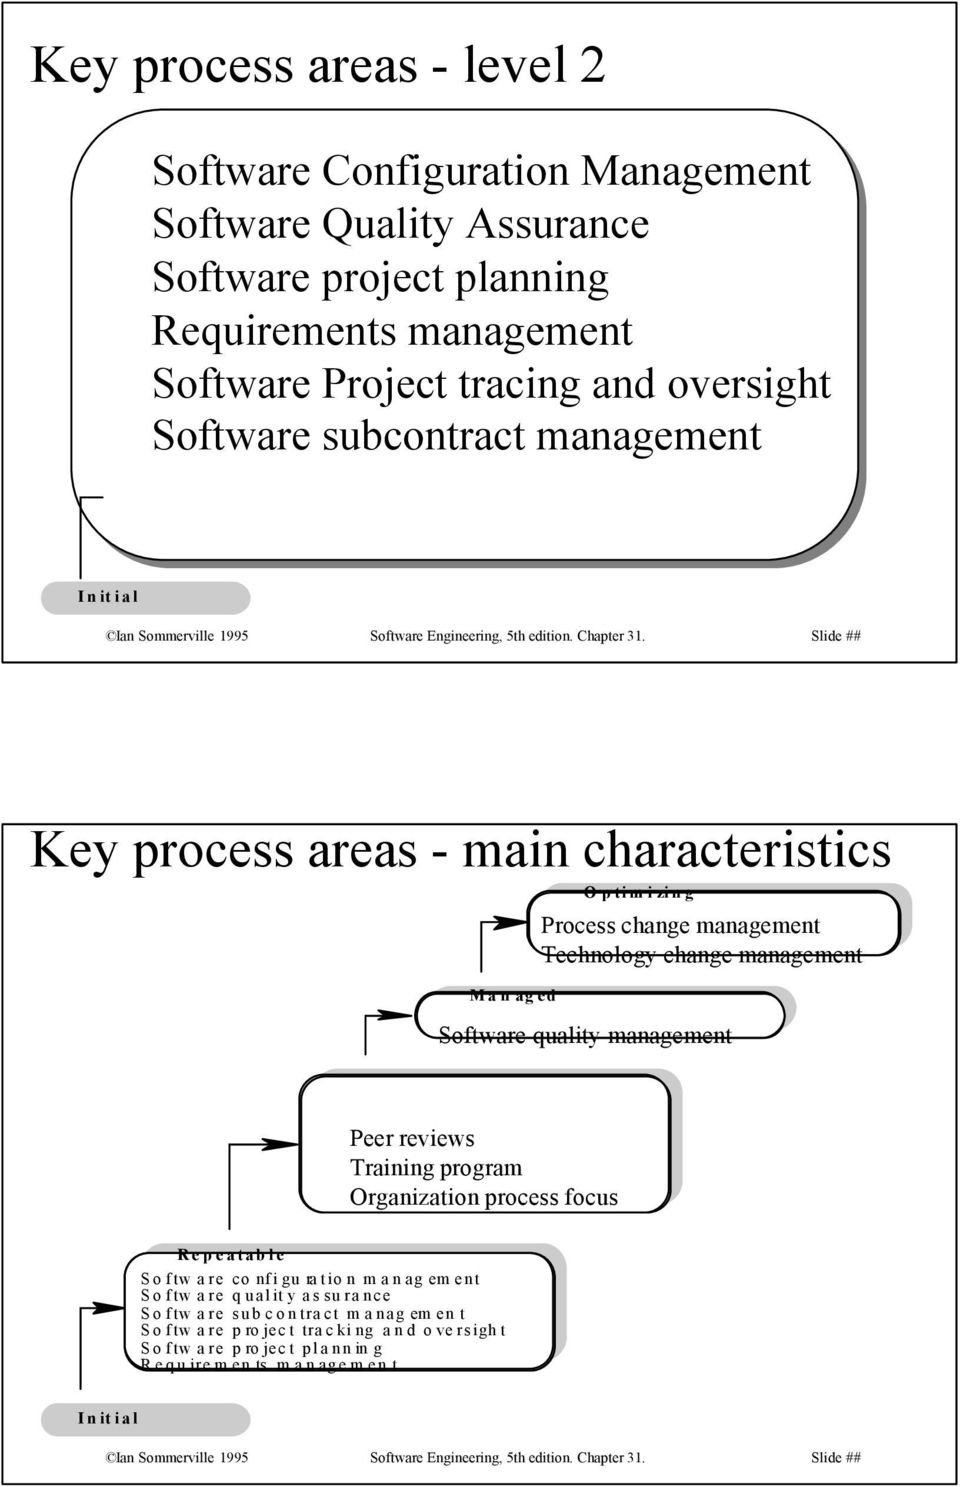 Slide ## Key process areas - main characteristics M a n ag ed O p tim i zin g Process change management Technology change management Software quality management Peer reviews Training program